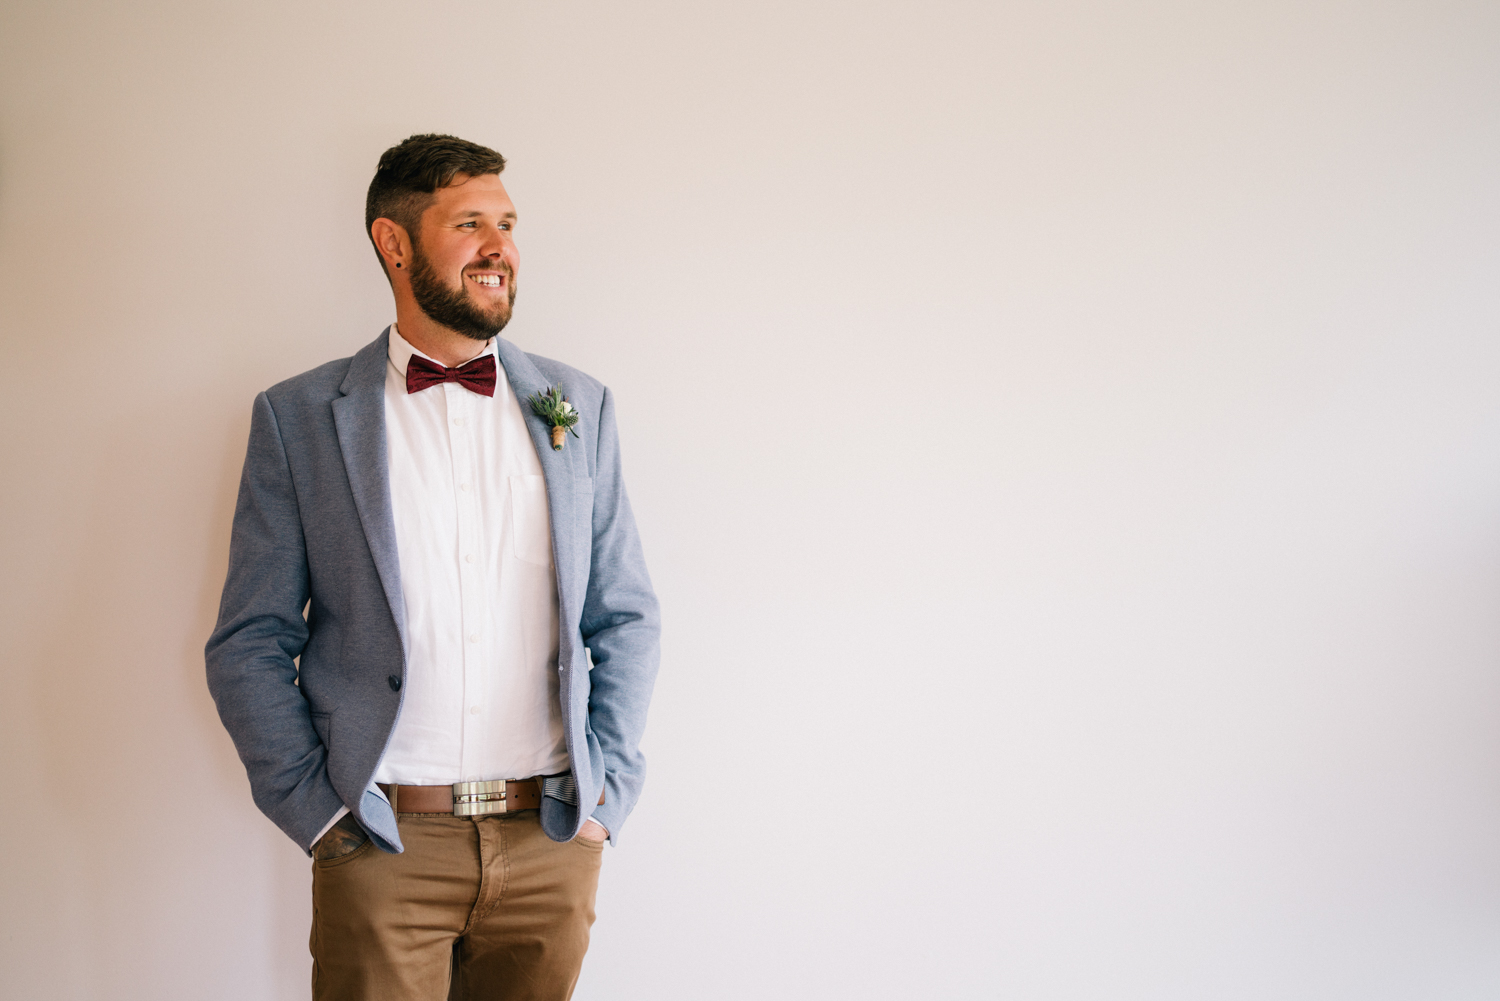 Groom standing by wall